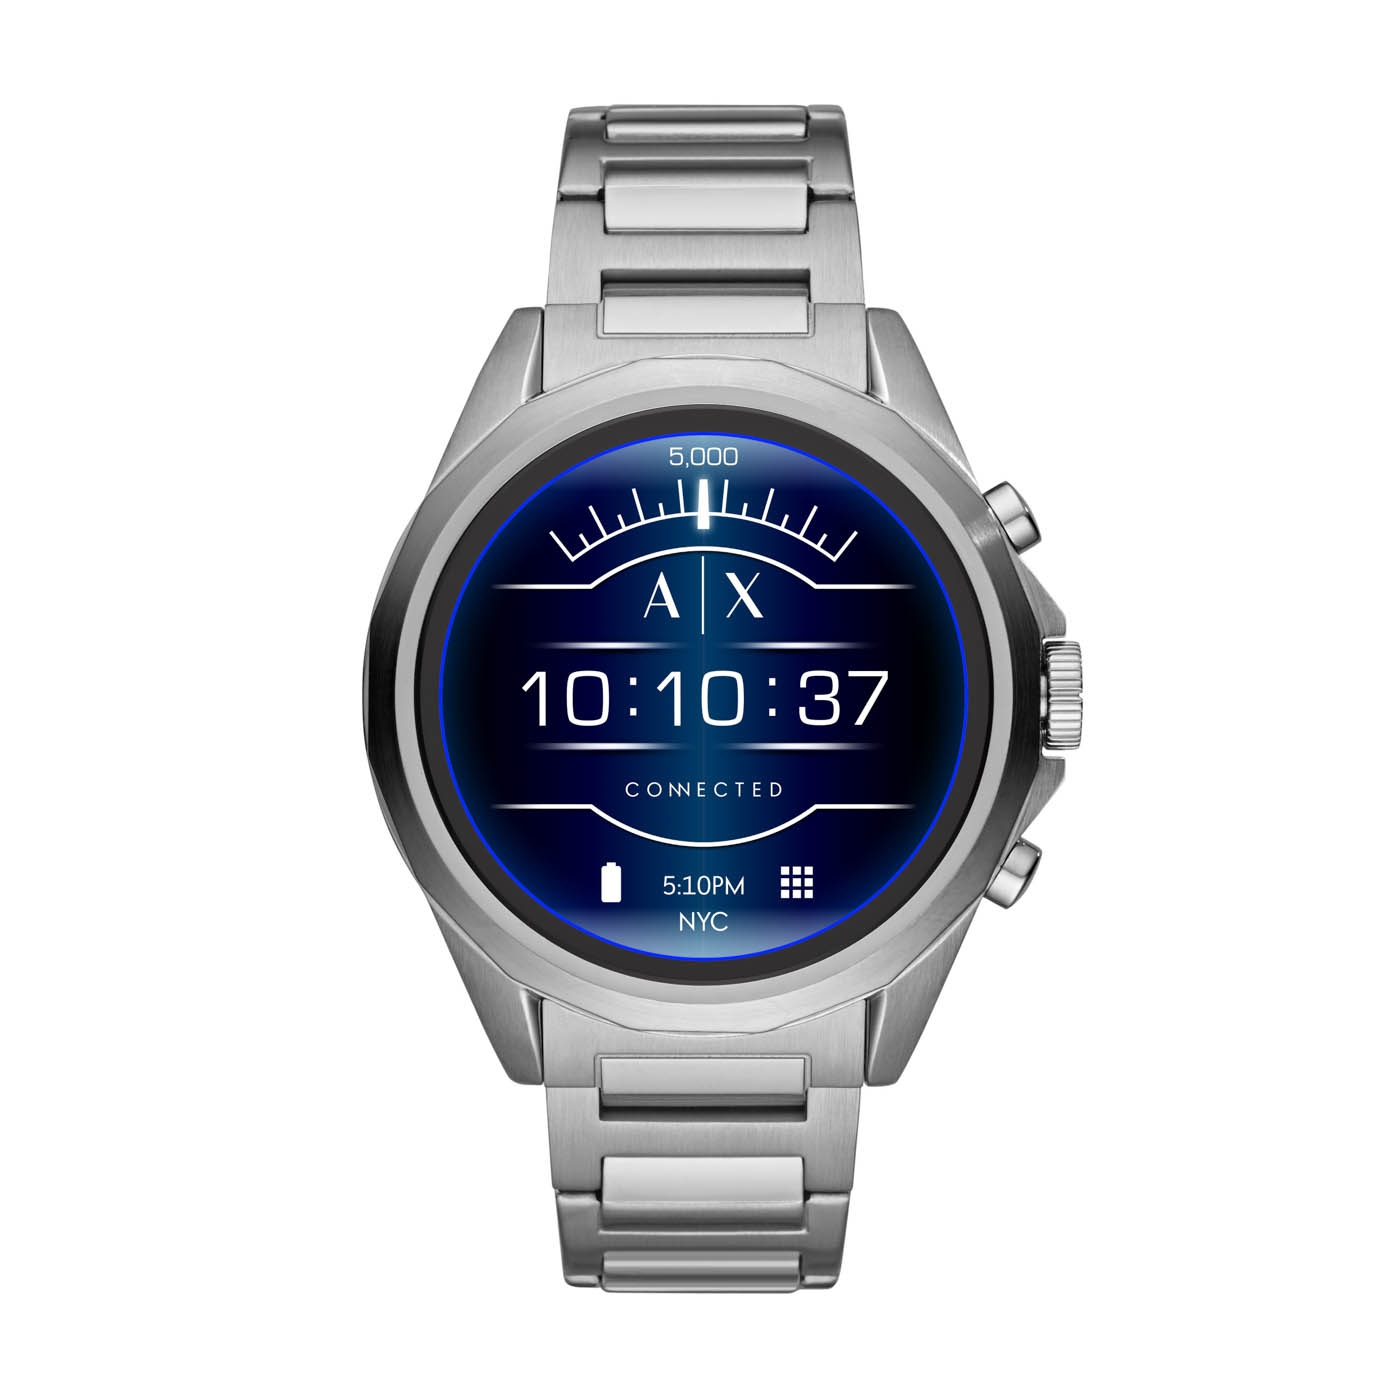 Bilde av Armani Exchange Connected Drexler Gen 4 Display Smartwatch AXT2000